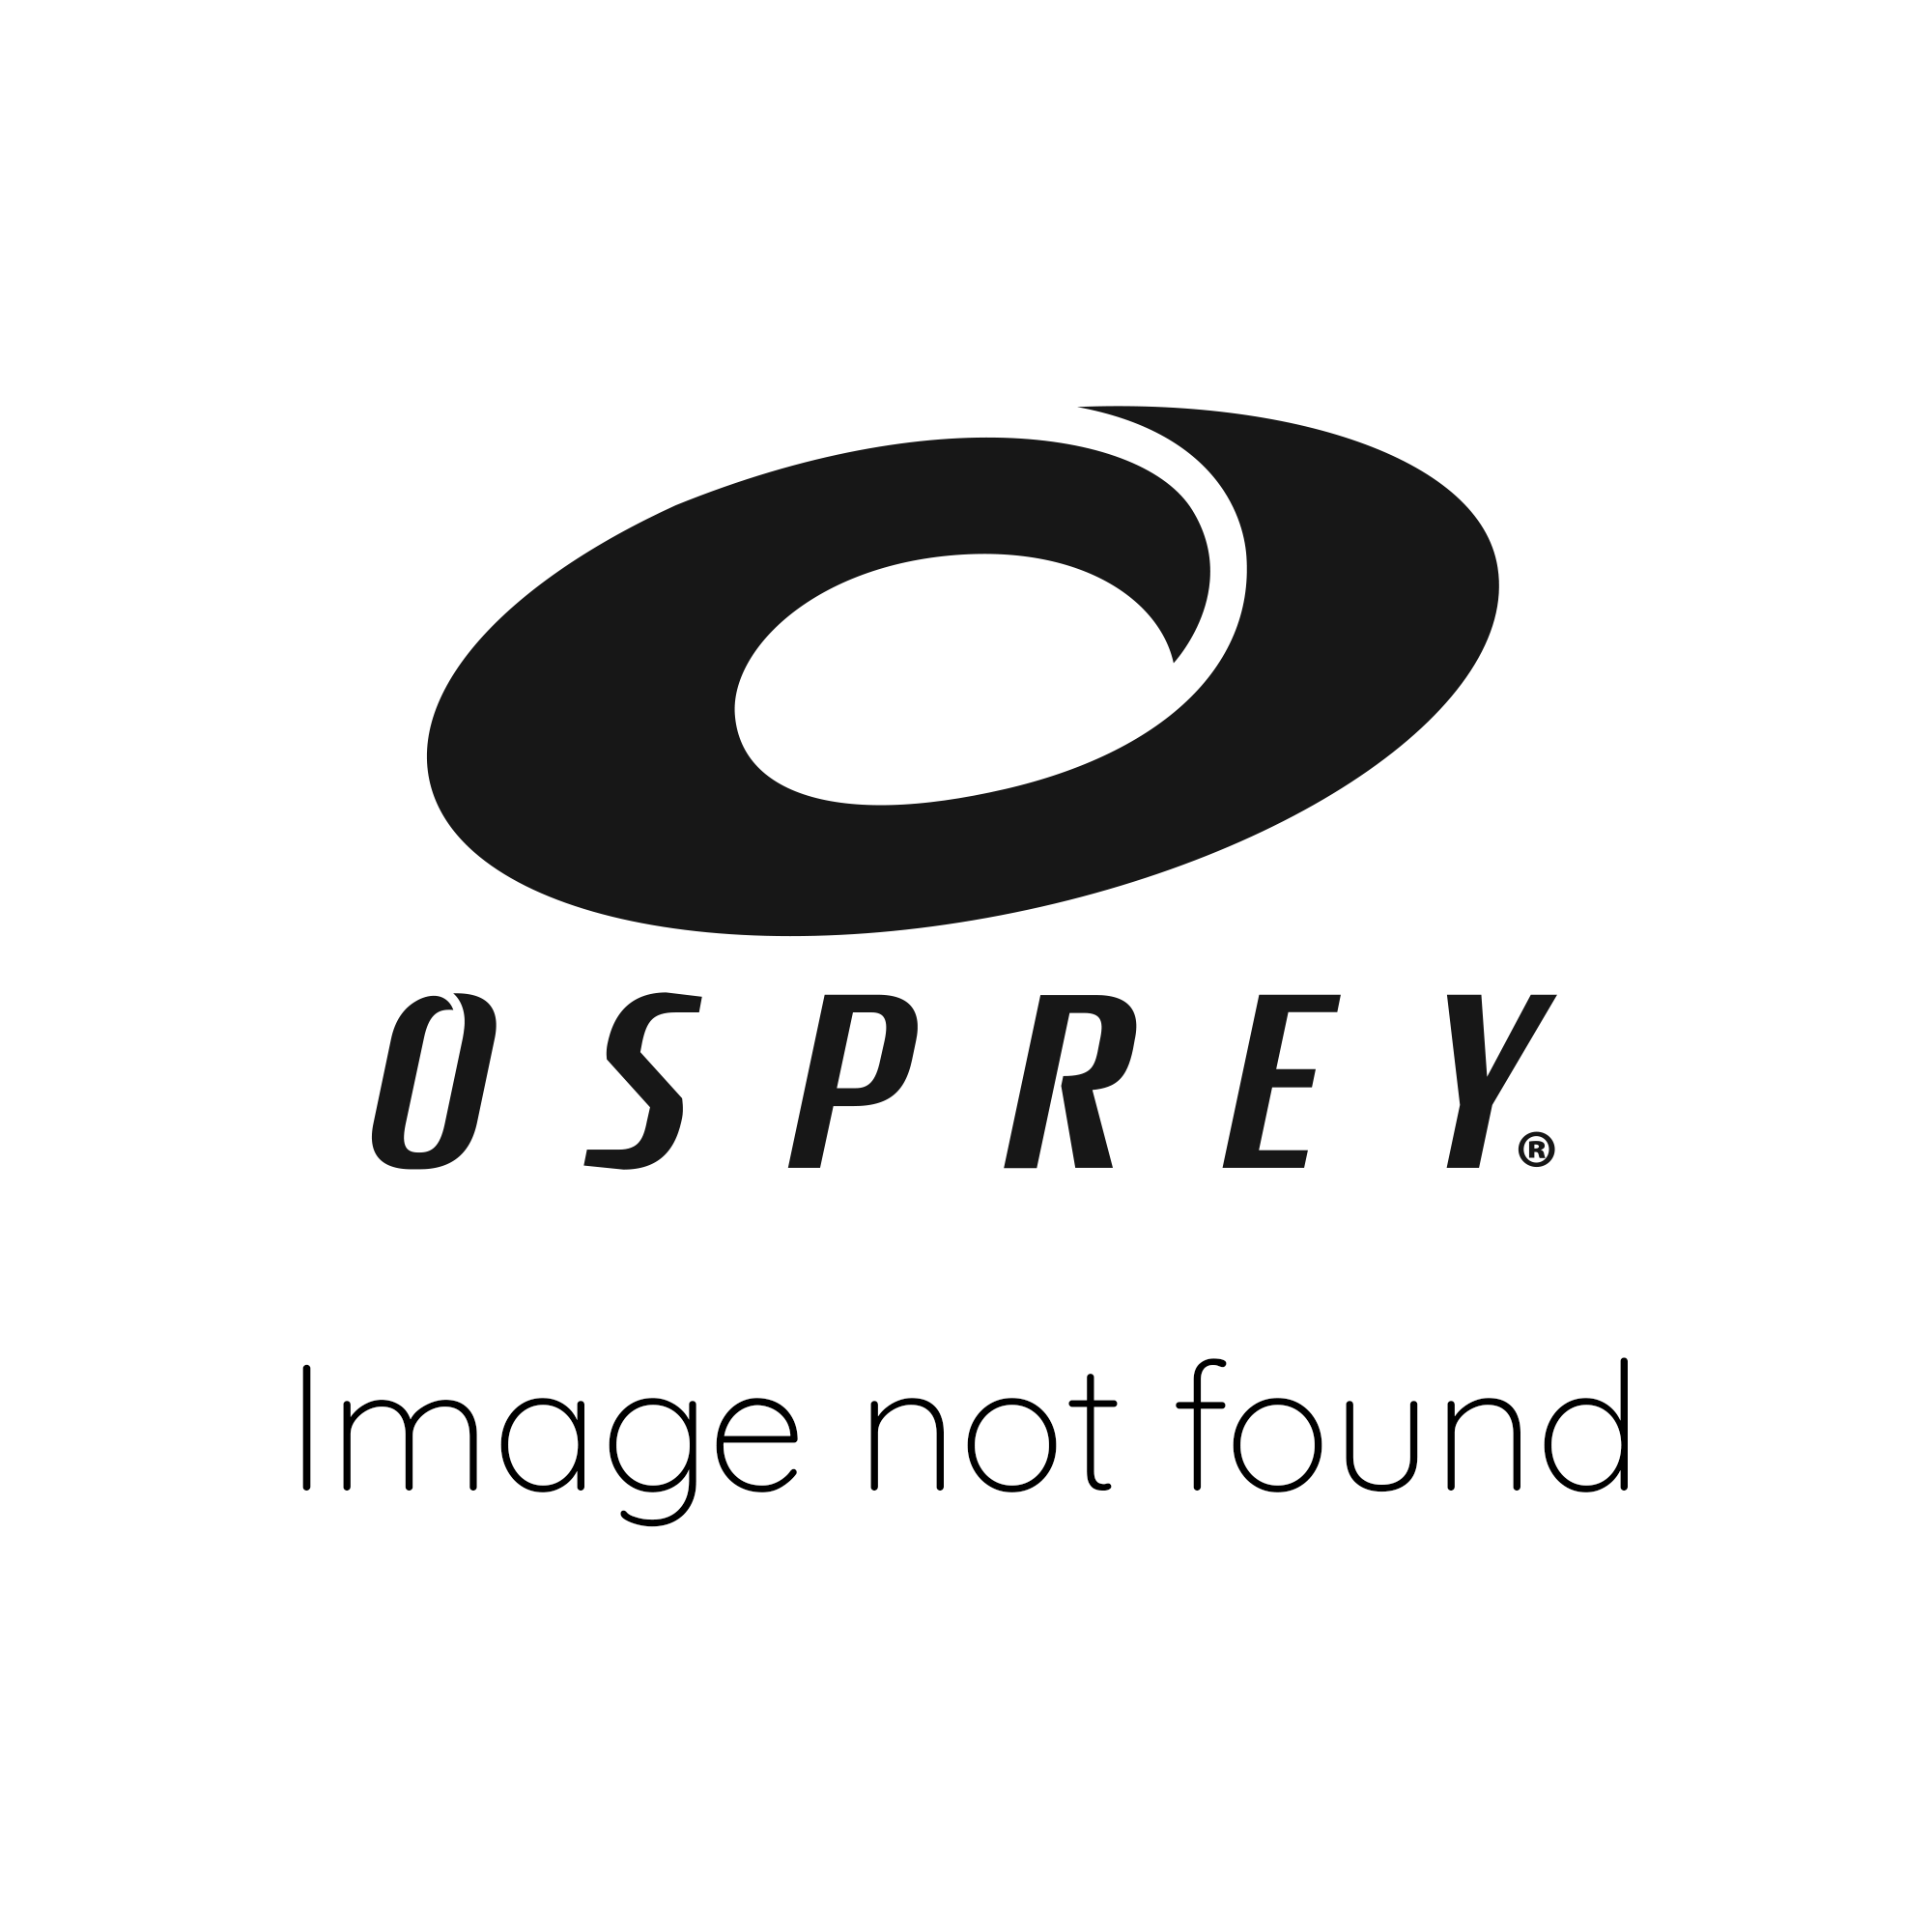 Osprey Womens 3mm Origin Full Length Wetsuit - Black